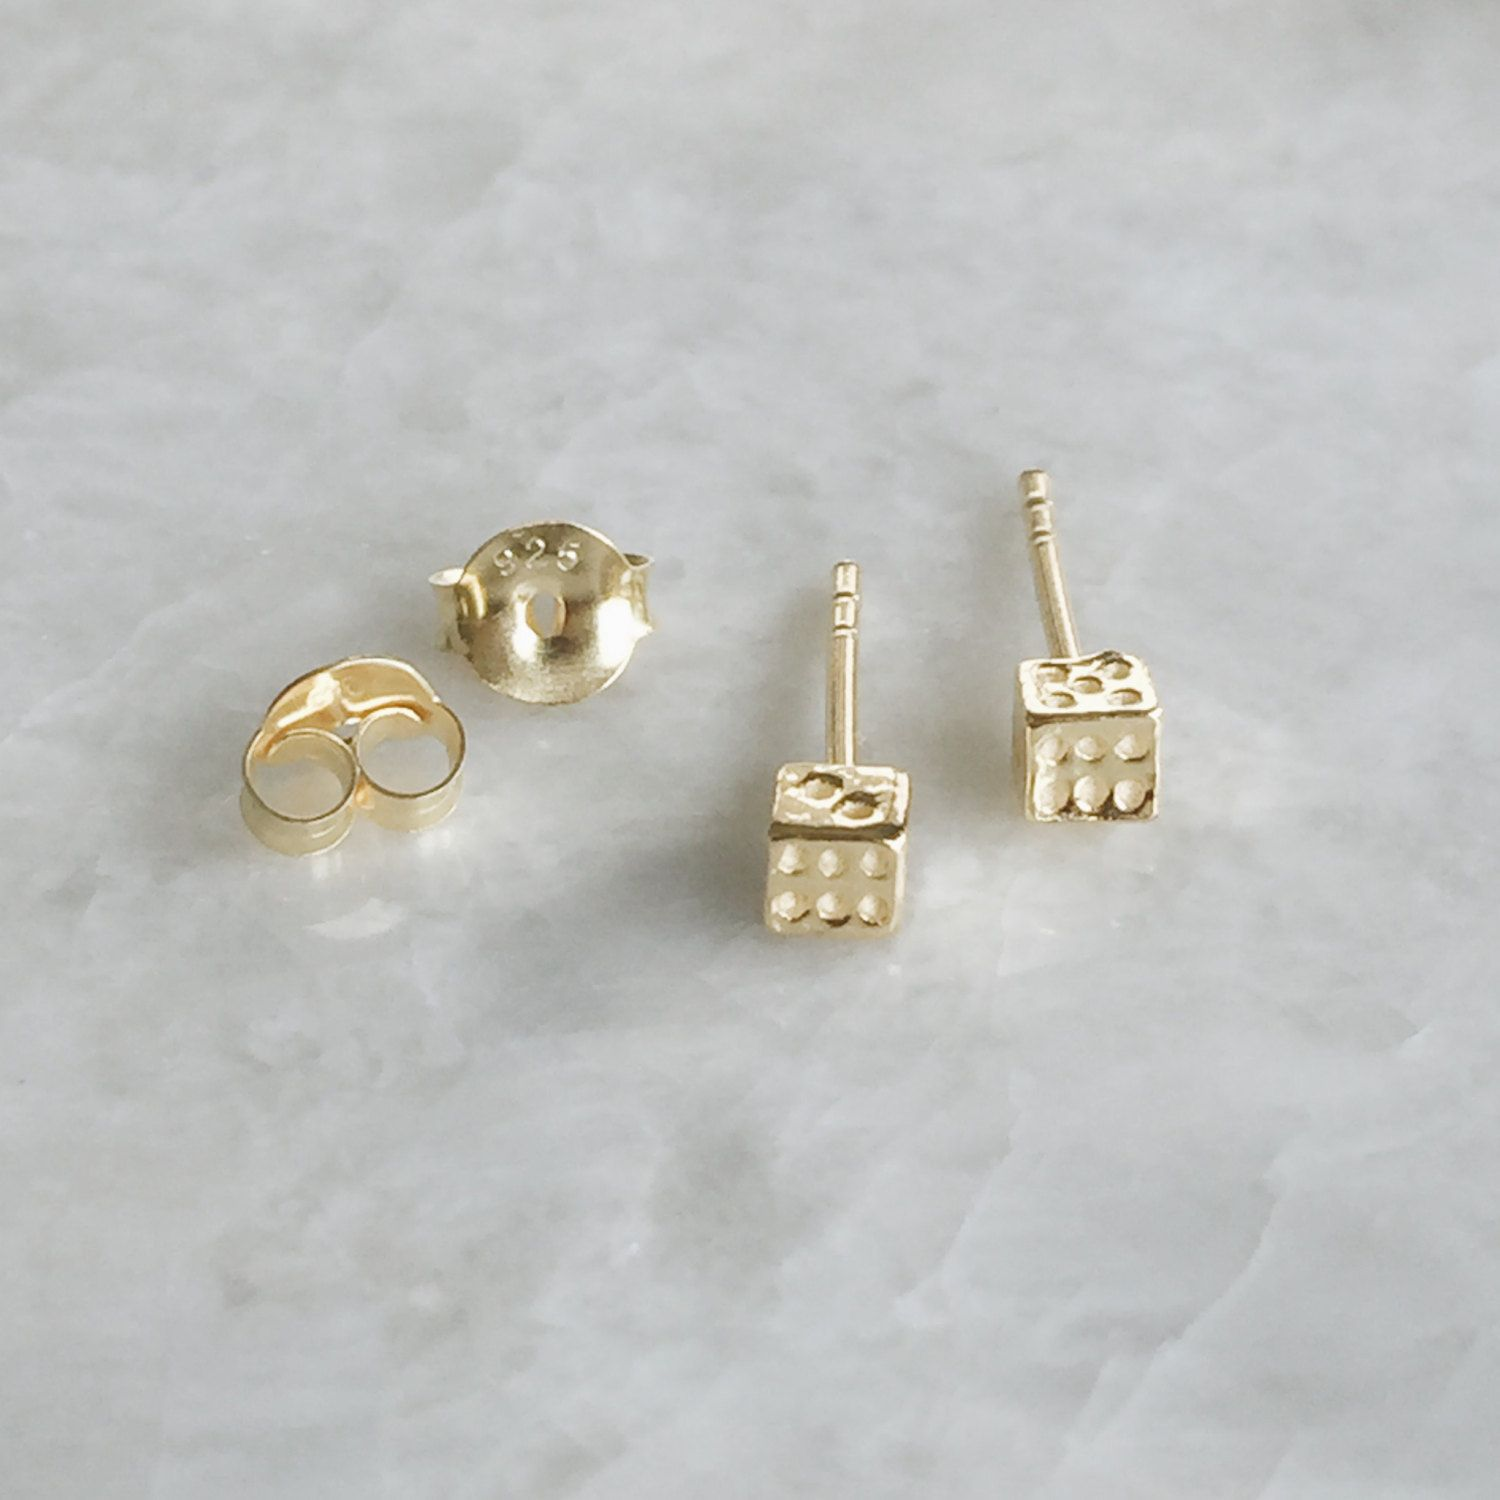 Tiny gold dice ear studs, Gold dice studs, dice earrings, Minimal studs, Cartilage stud, Funky studs (ES287) by SilverCartel on Etsy